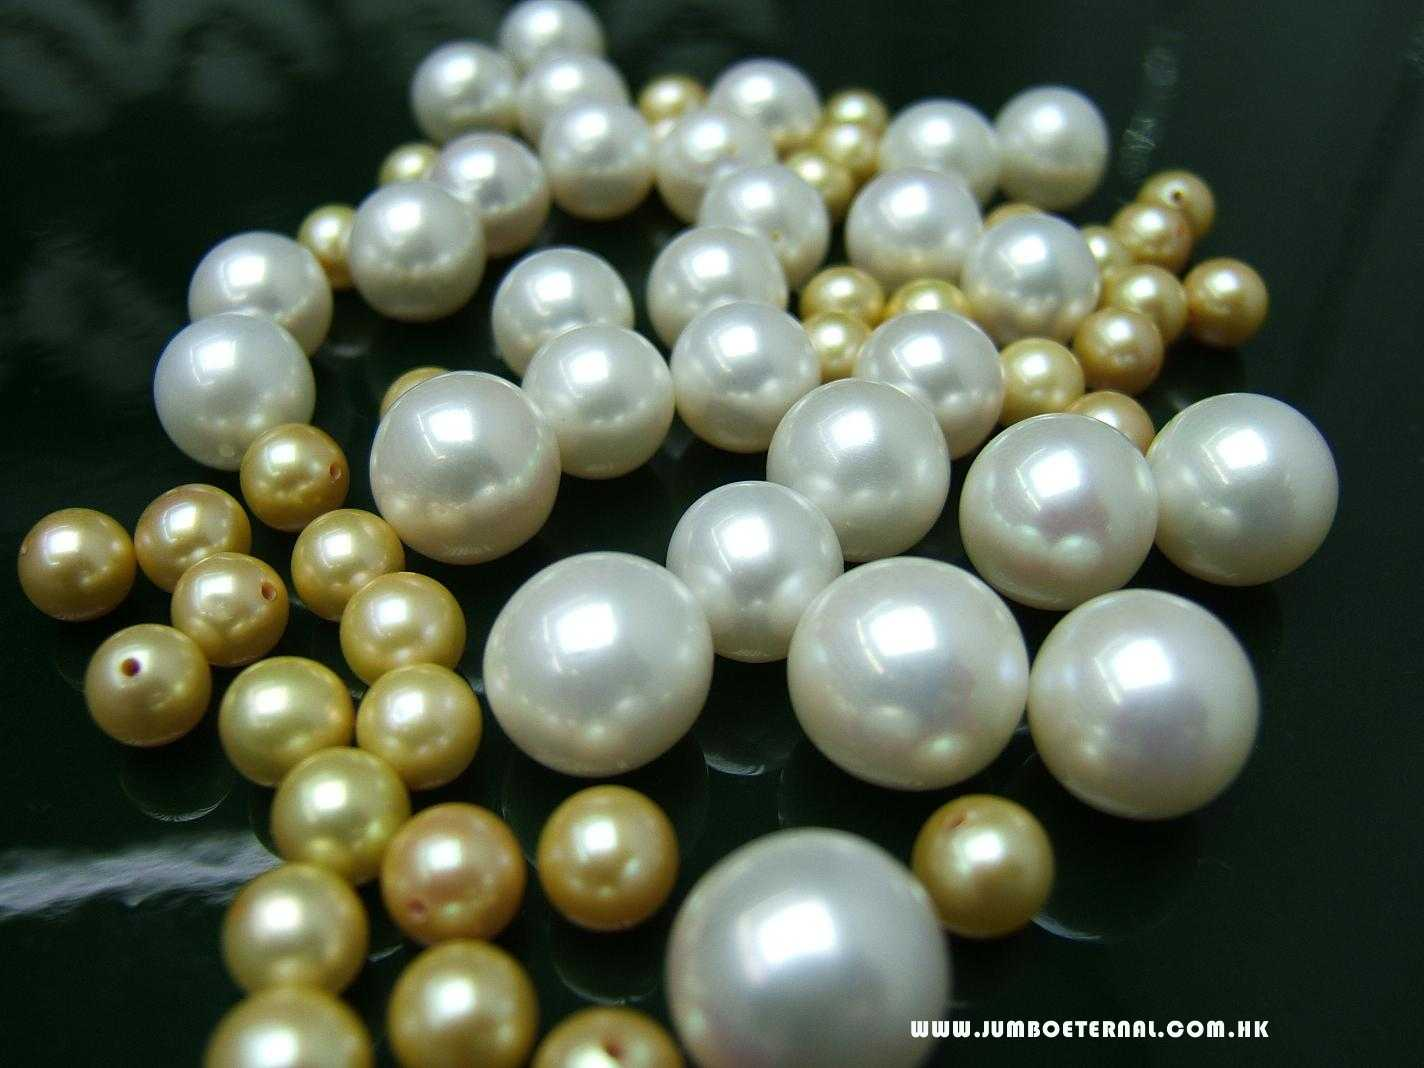 Golden&White Loose Pearls